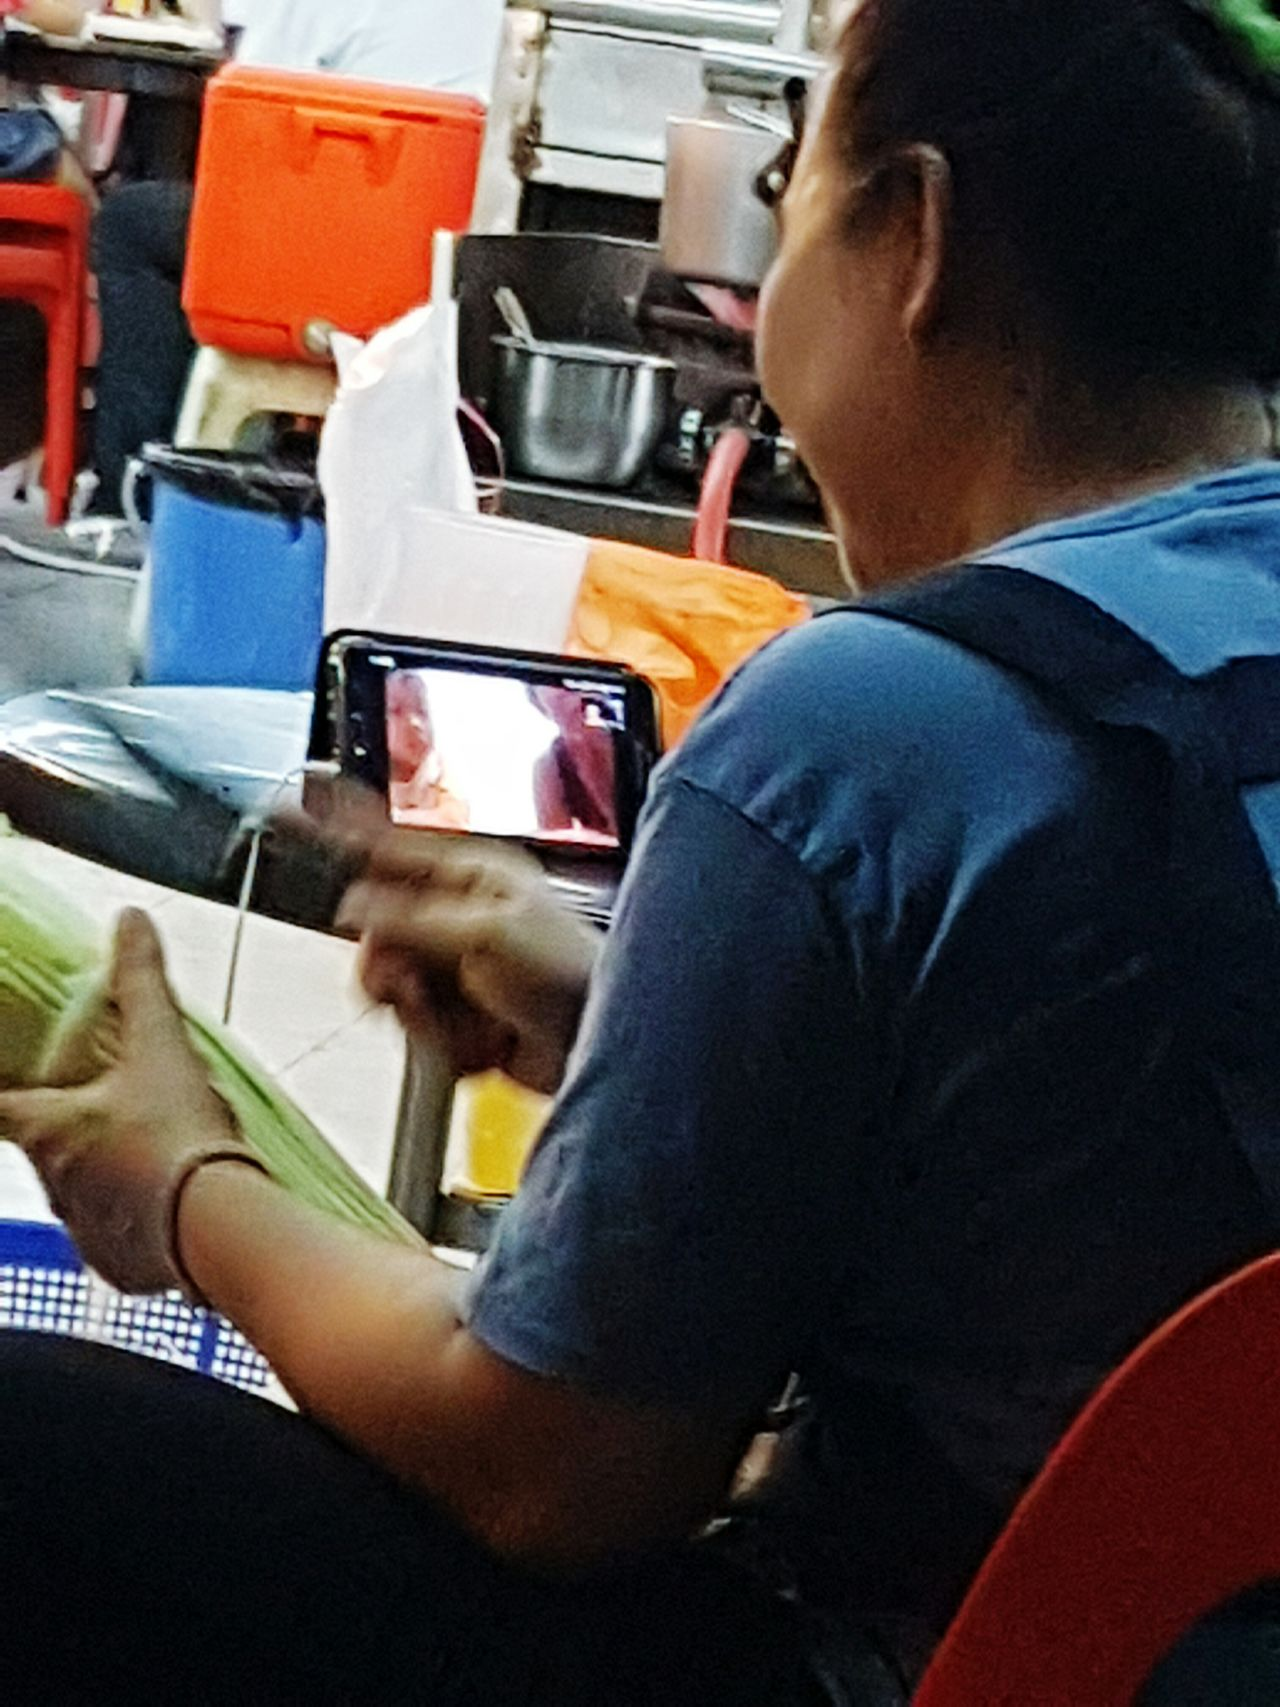 Like she was cooking in her own kitchen back in Thailand while spending time with her son Rear View Connection Hawkerfood Hawker Centre Hawkers Market Hawker Foodstall Food Photography Handphone